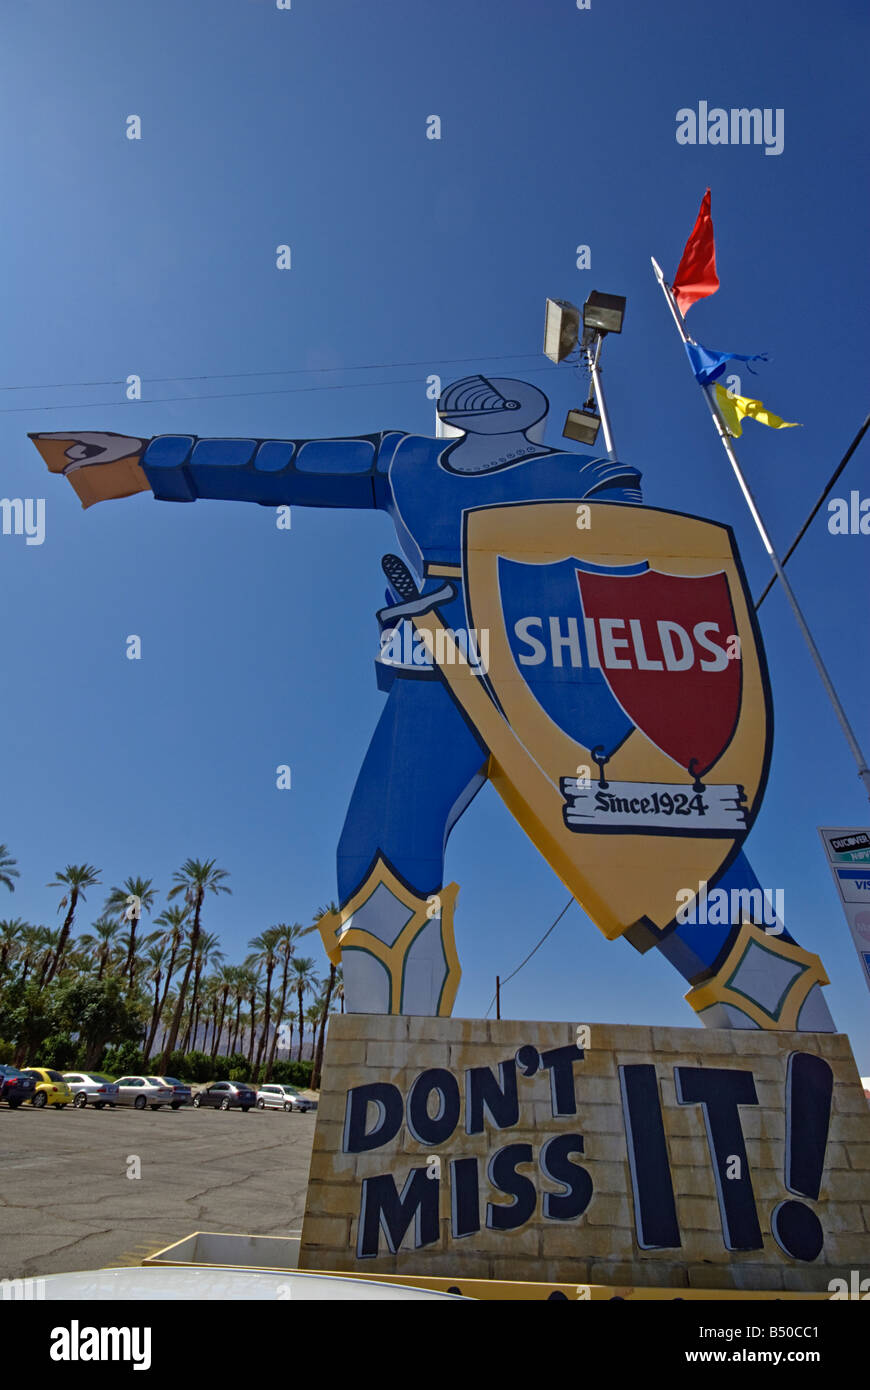 shields date garden is a historic date orchard and tourist attraction in indio california usa - Shields Date Garden